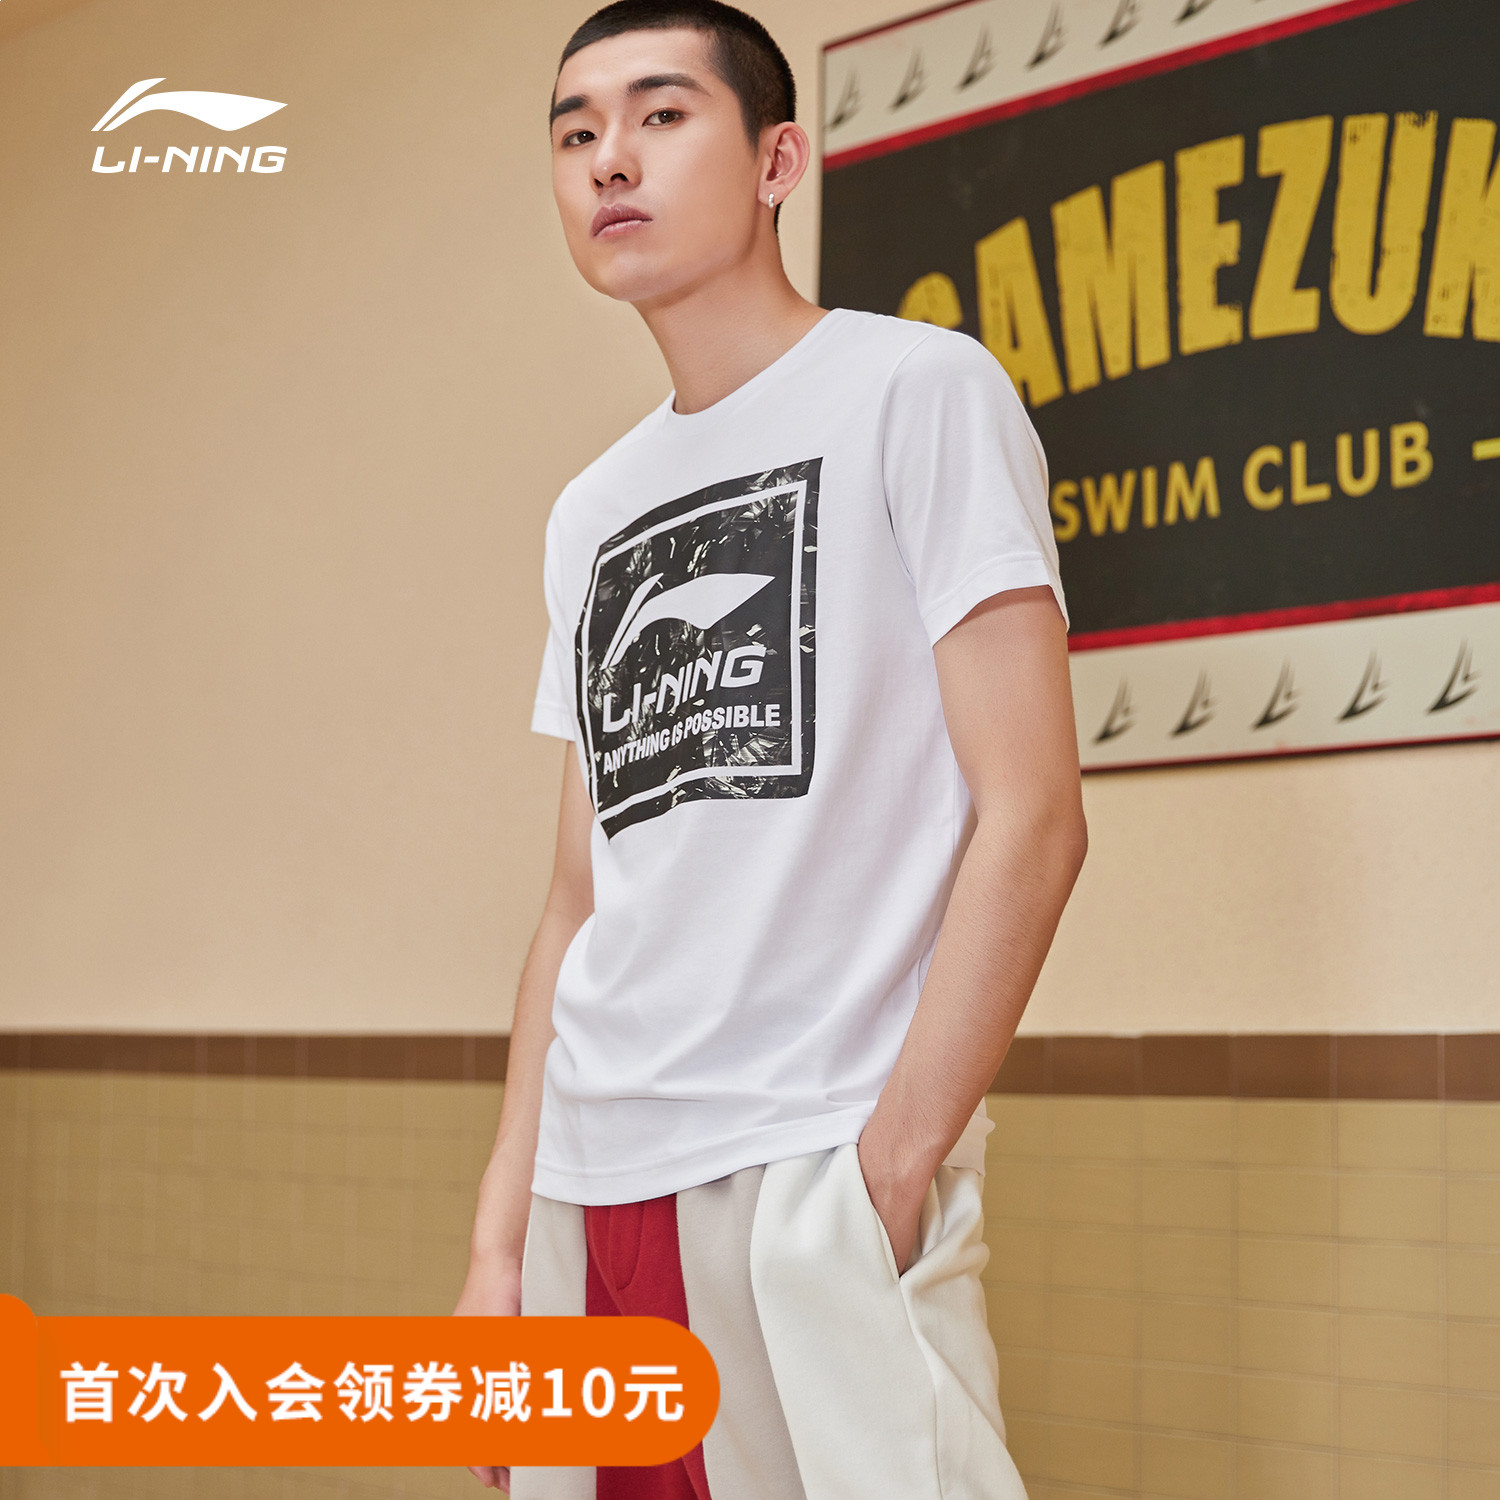 Li Ning short-sleeved male sports summer print white large size flagship official website genuine men's breathable top T-shirt